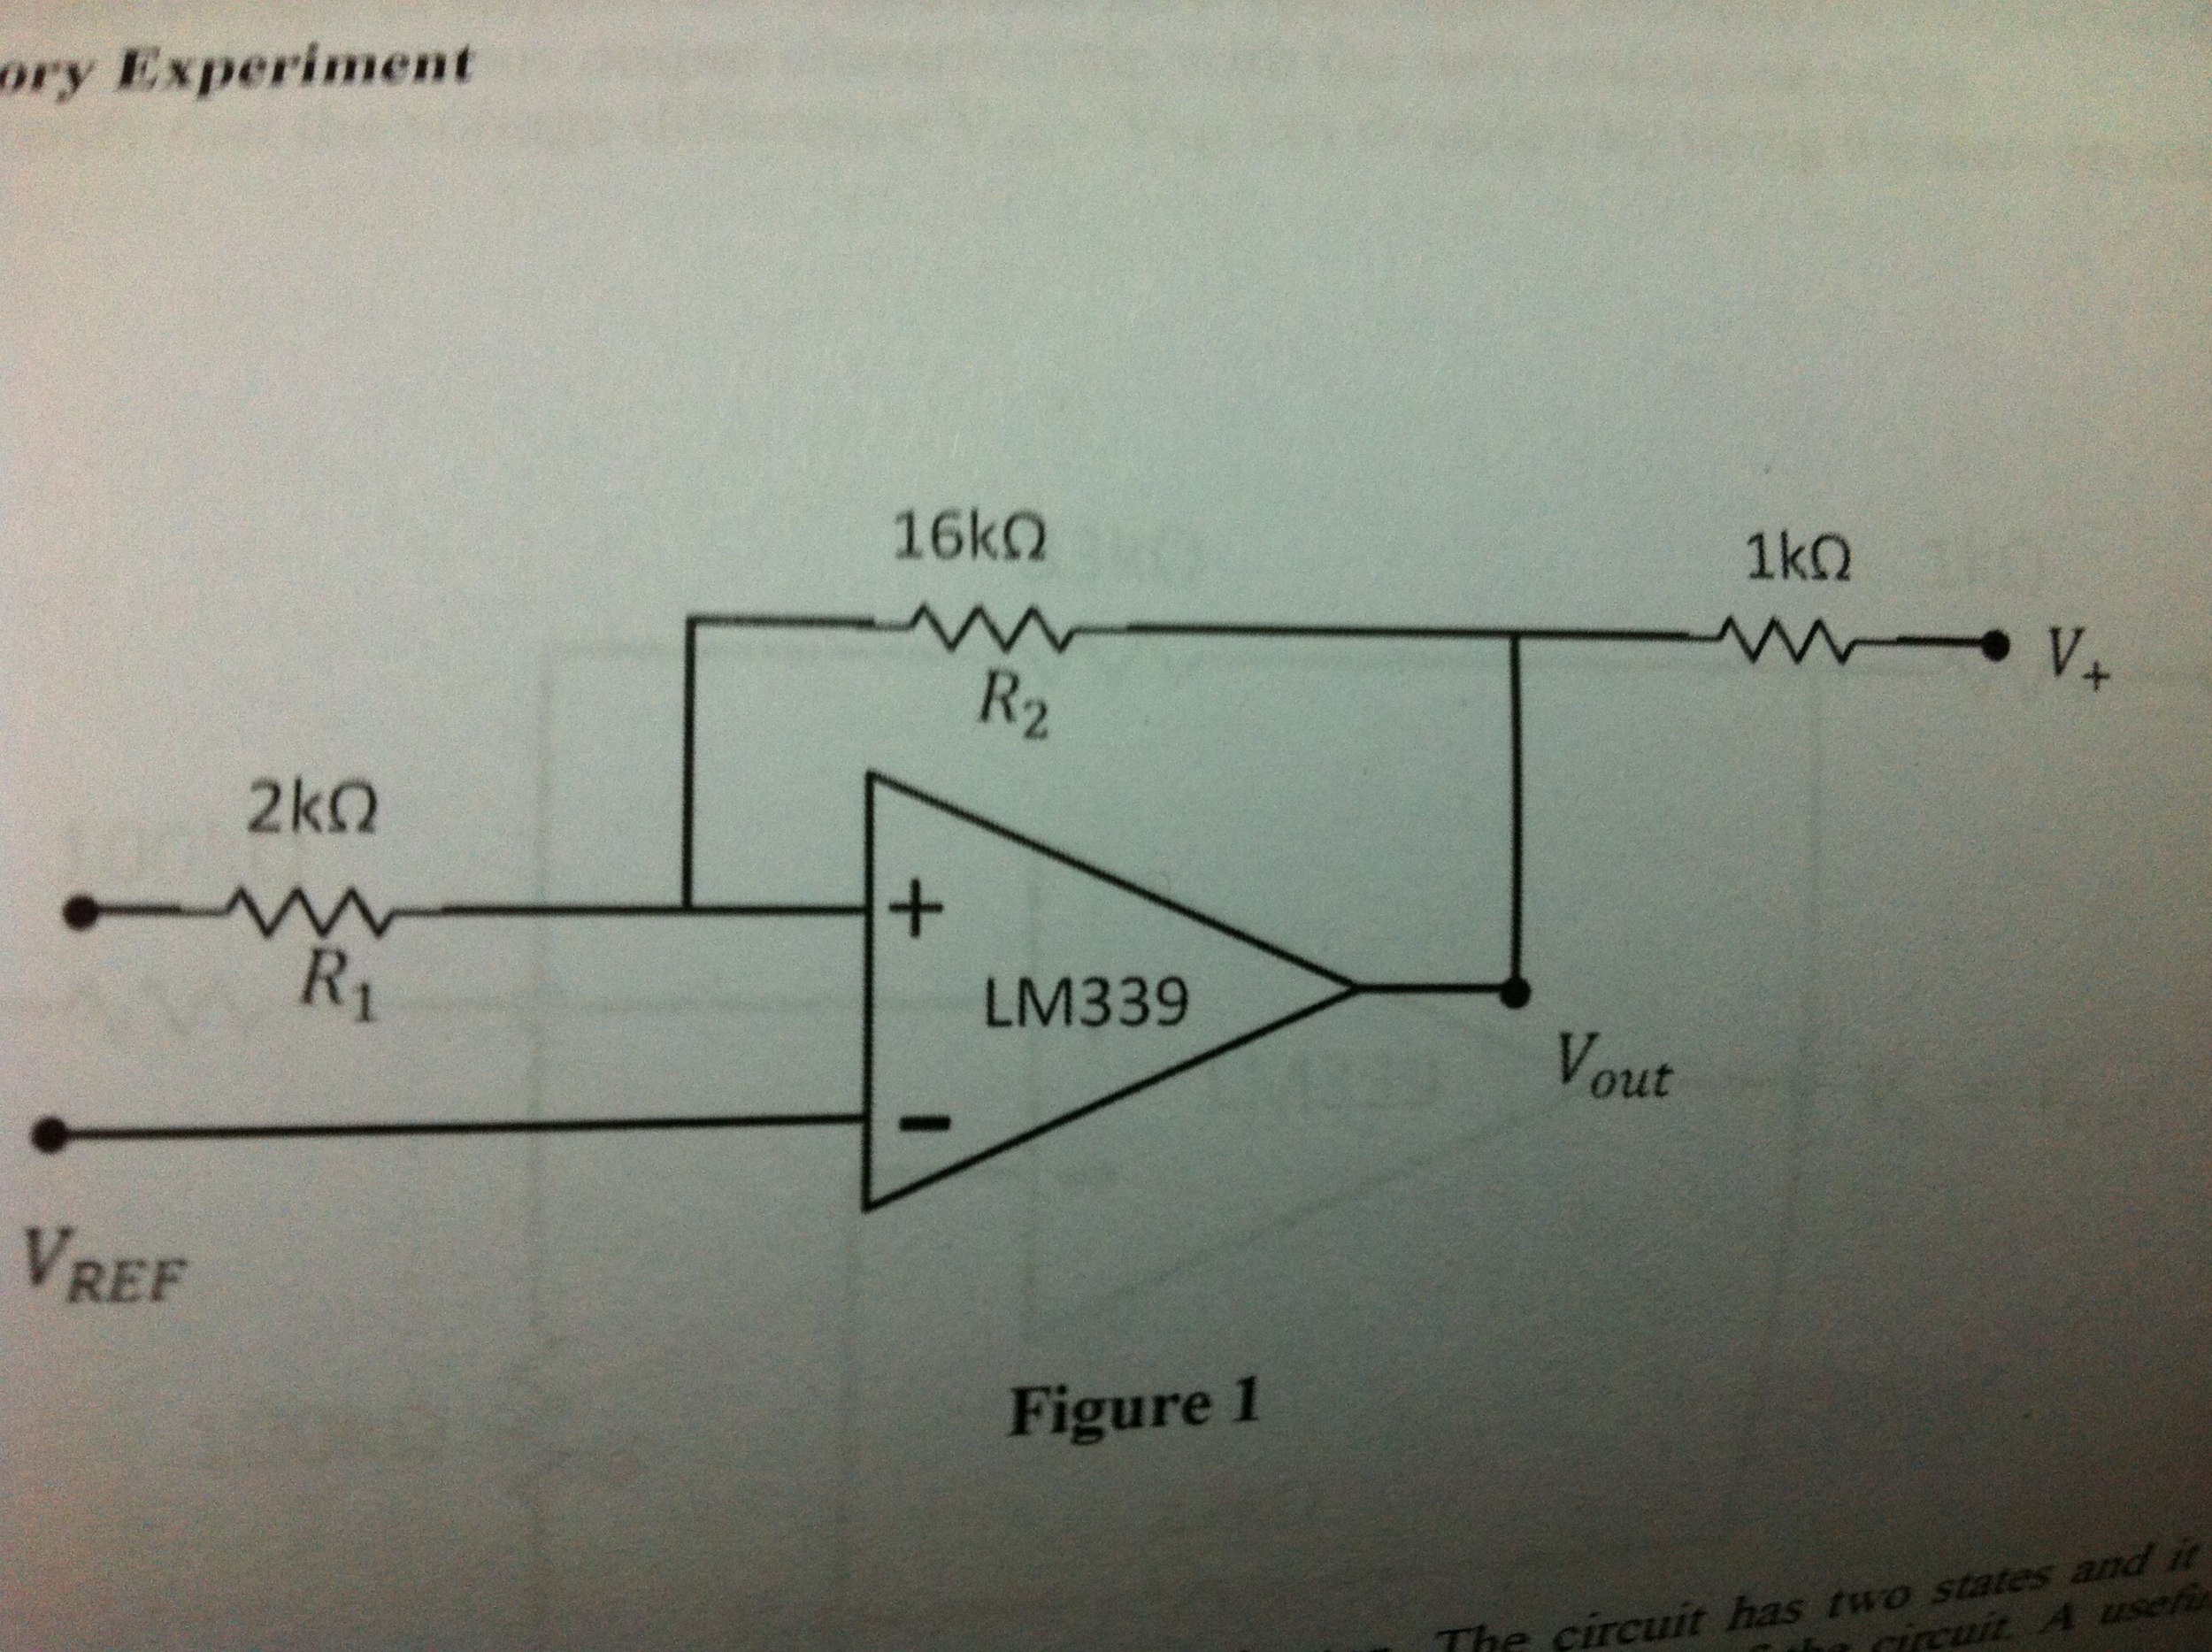 Familiarize yourself with the data sheet of LM 339